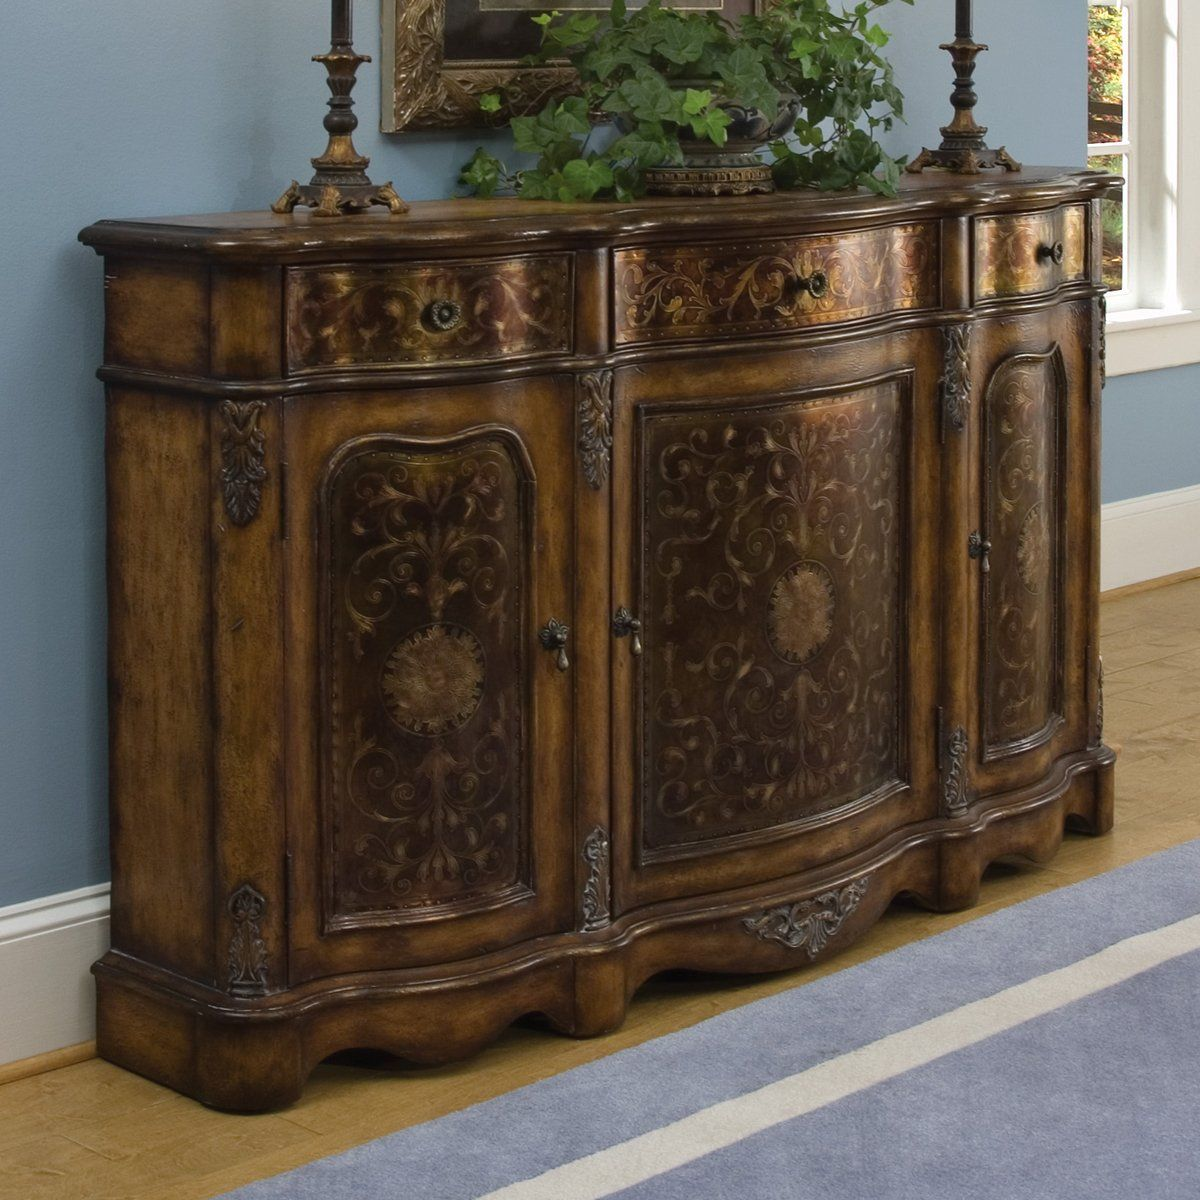 Bedroom Credenza: Pulaski Furniture 625222 Credenza Entry Table, Crete